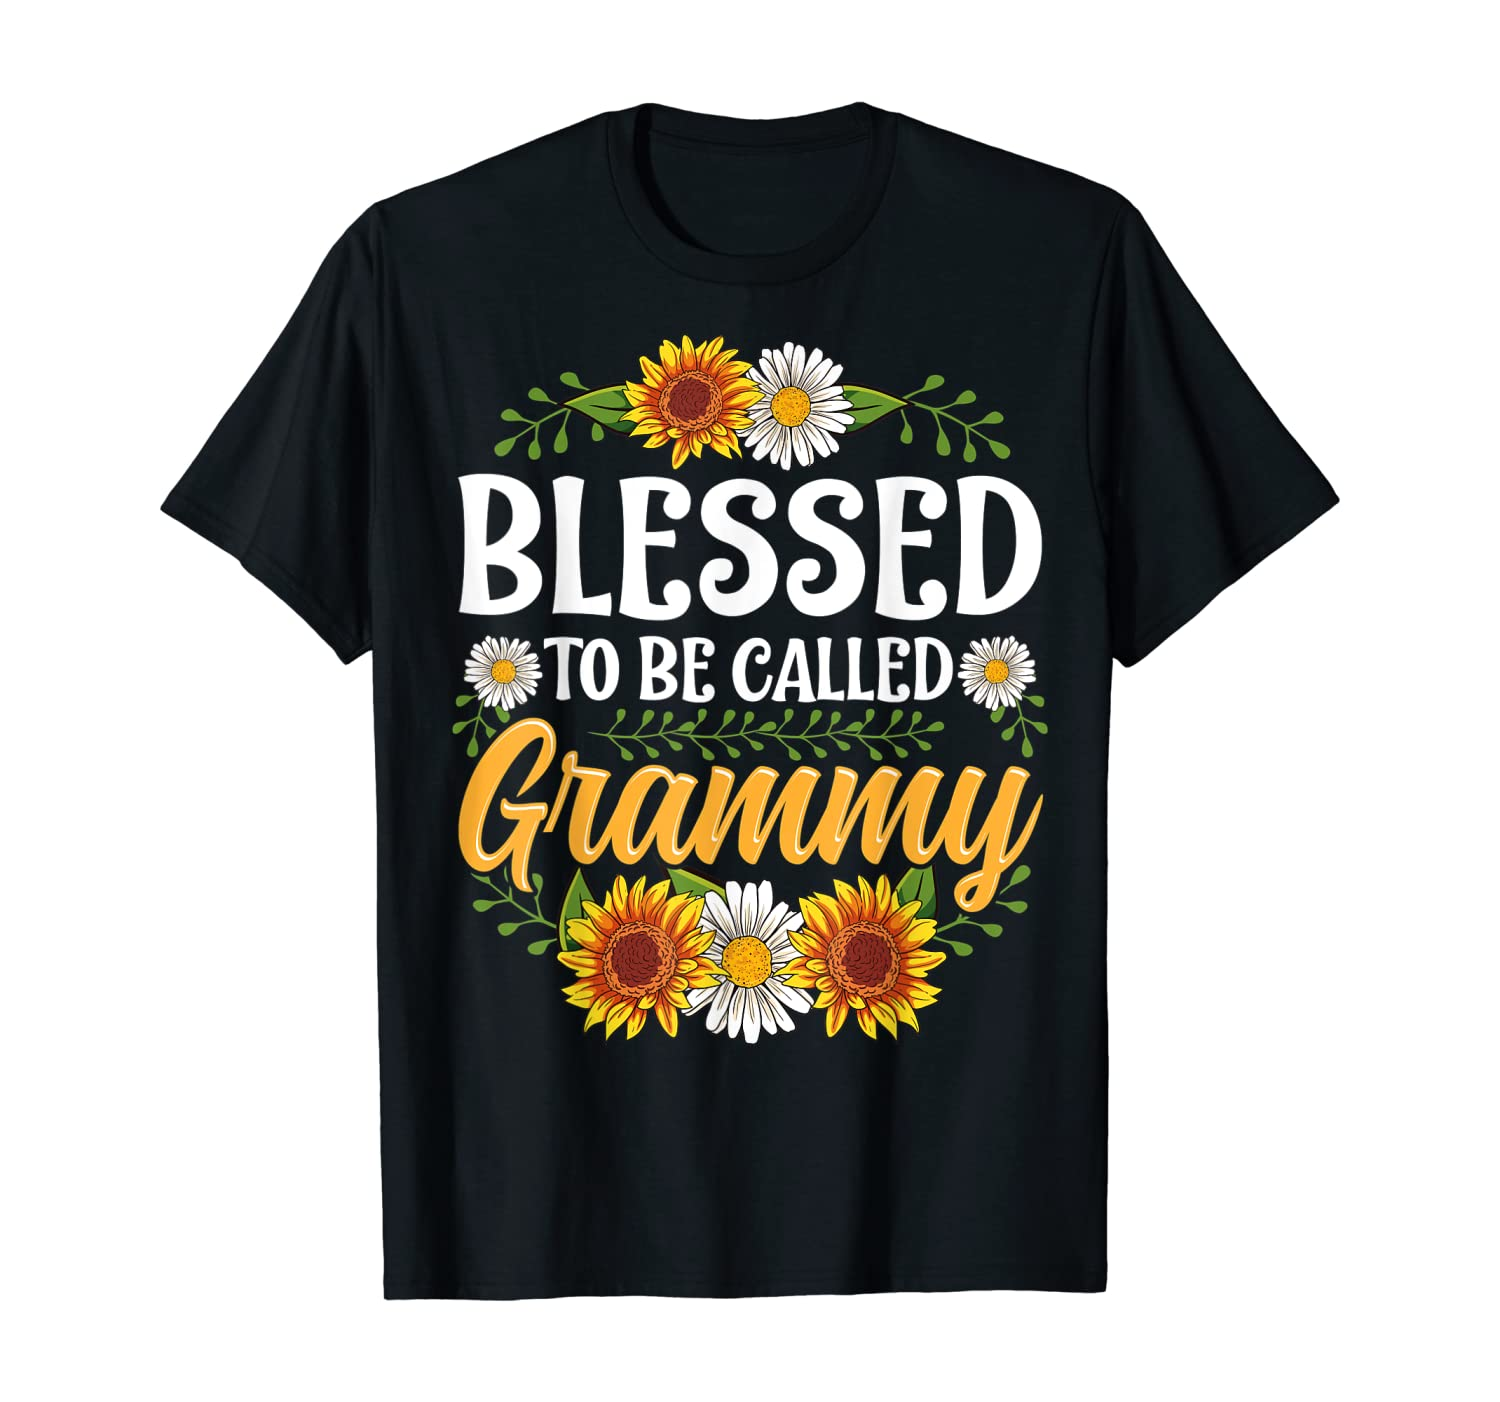 Blessed To Be Called Grammy Shirt Mothers Day T-Shirt